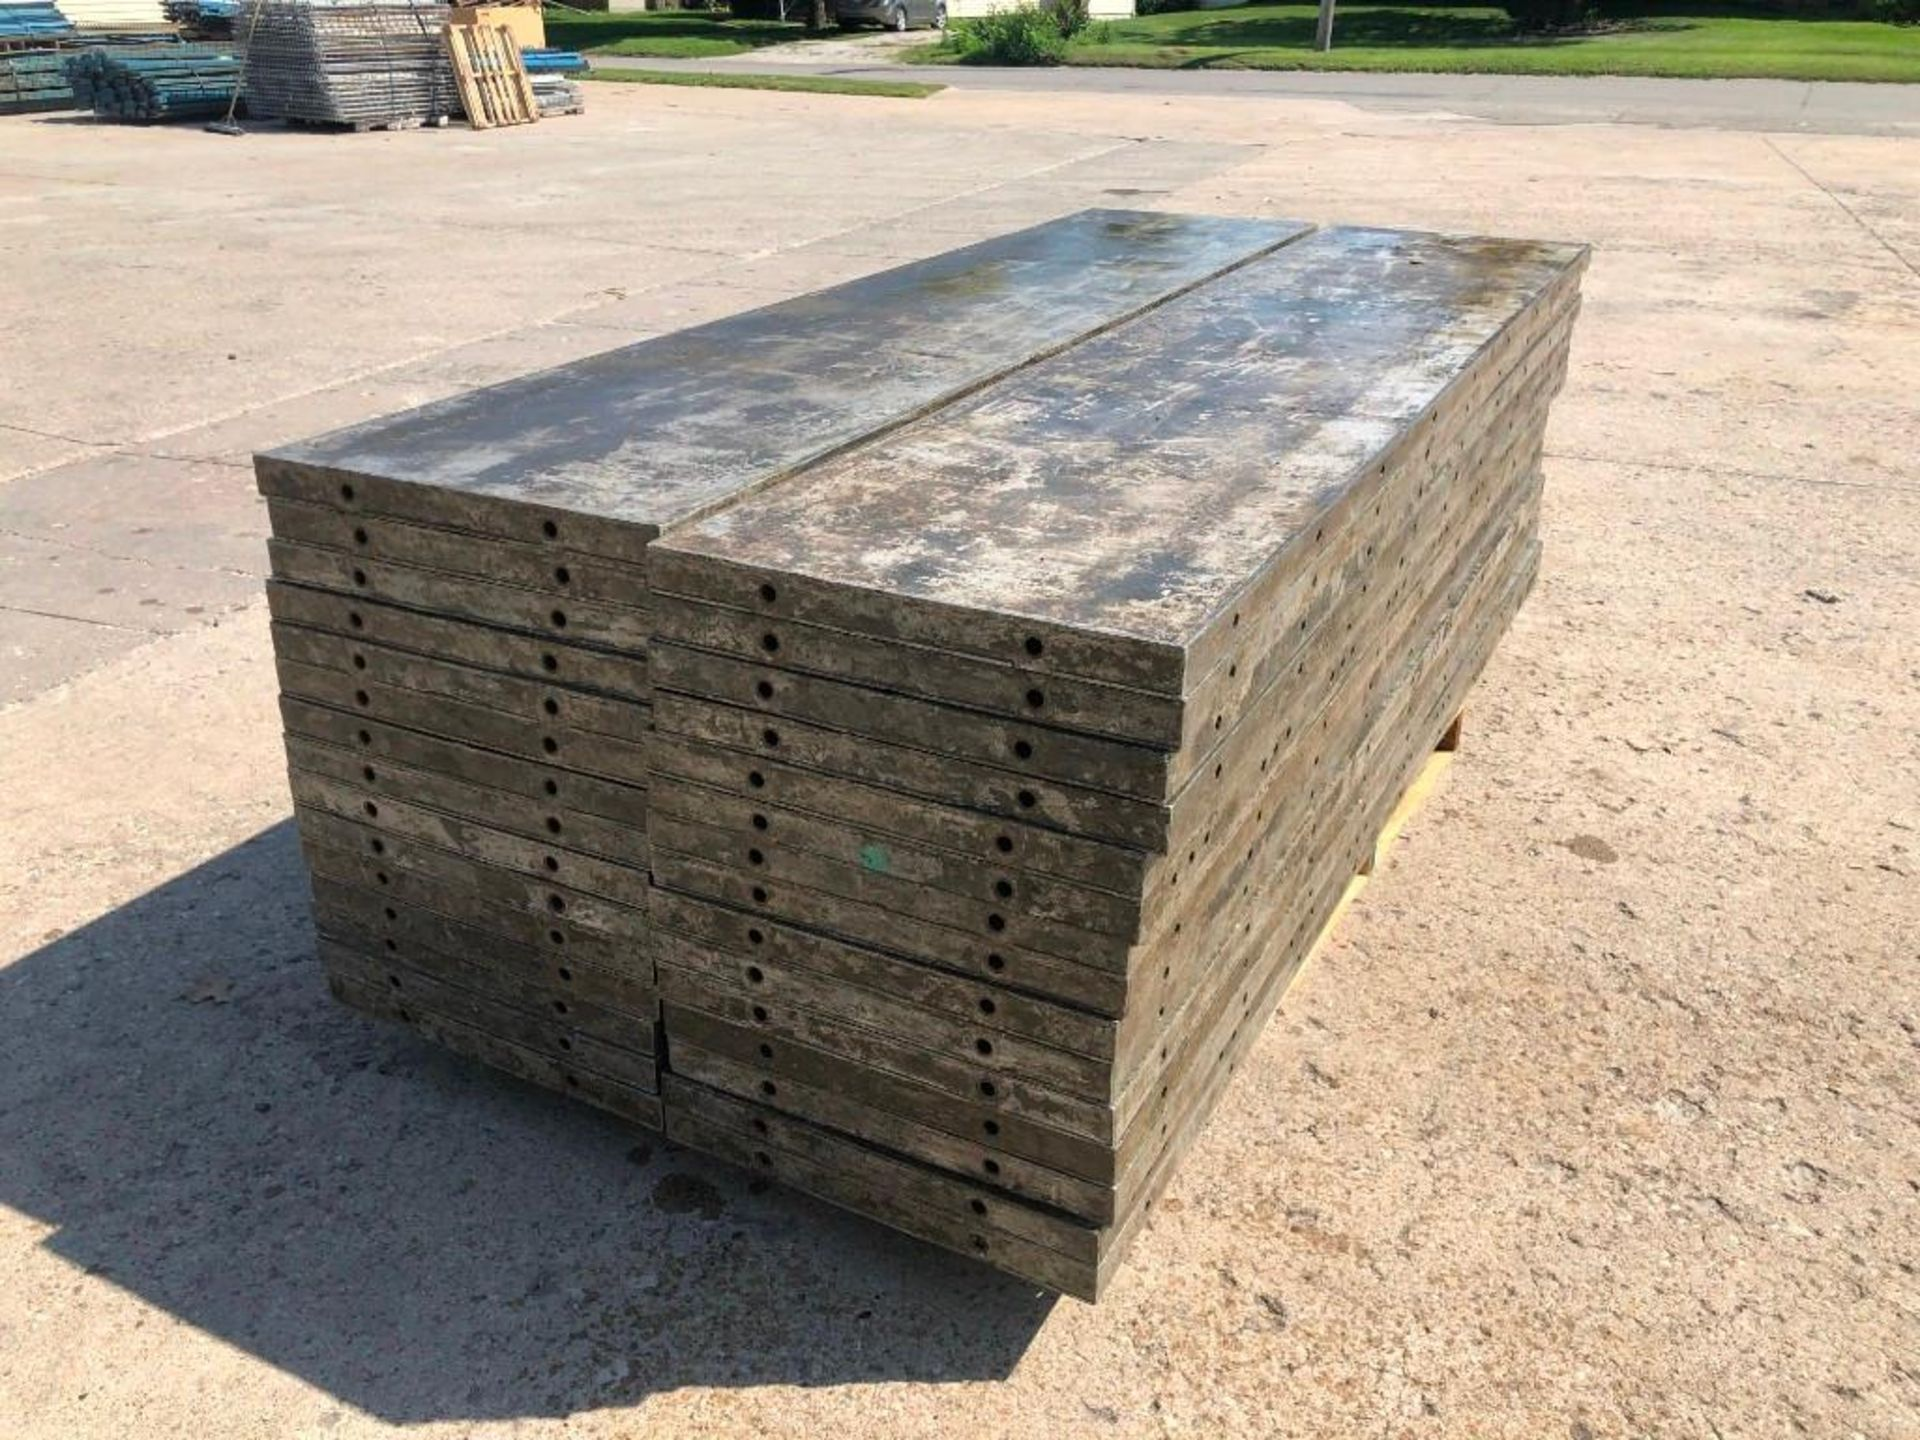 Lot 135 - (30) 2' x 9' Wall-Ties Aluminum Concrete Forms, Laydowns, Smooth 6-12 Hole Pattern. Located at 301 E